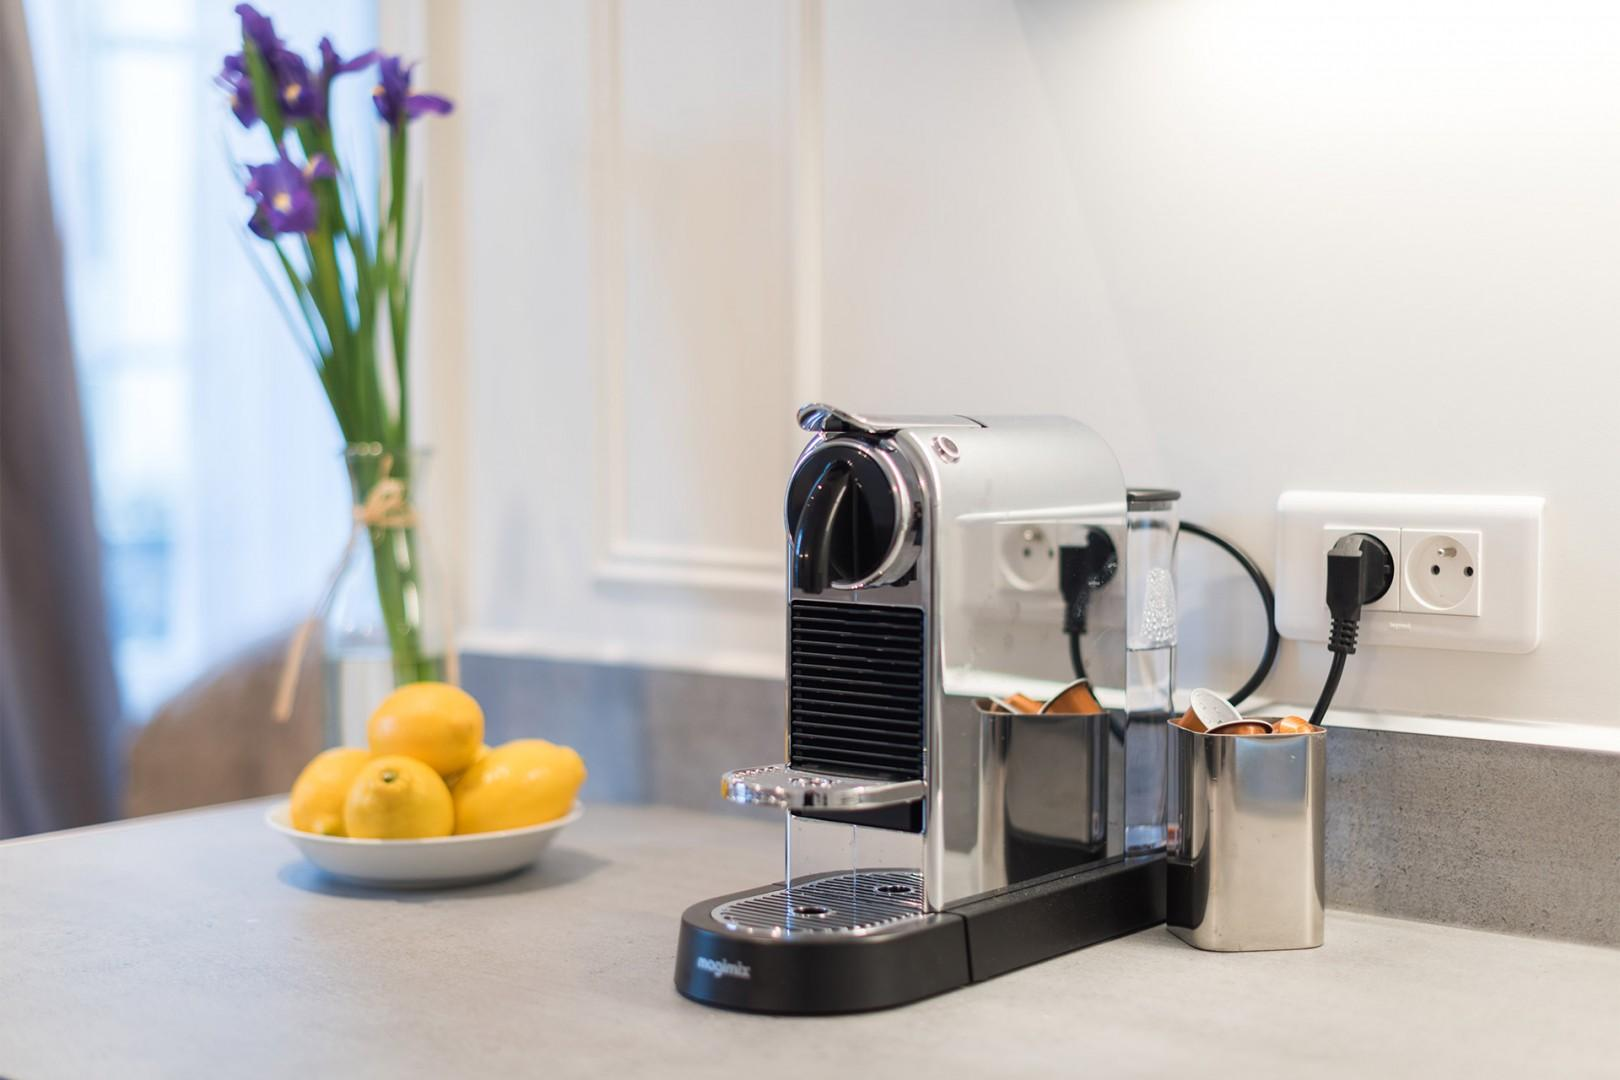 Nespresso machine for your morning coffee